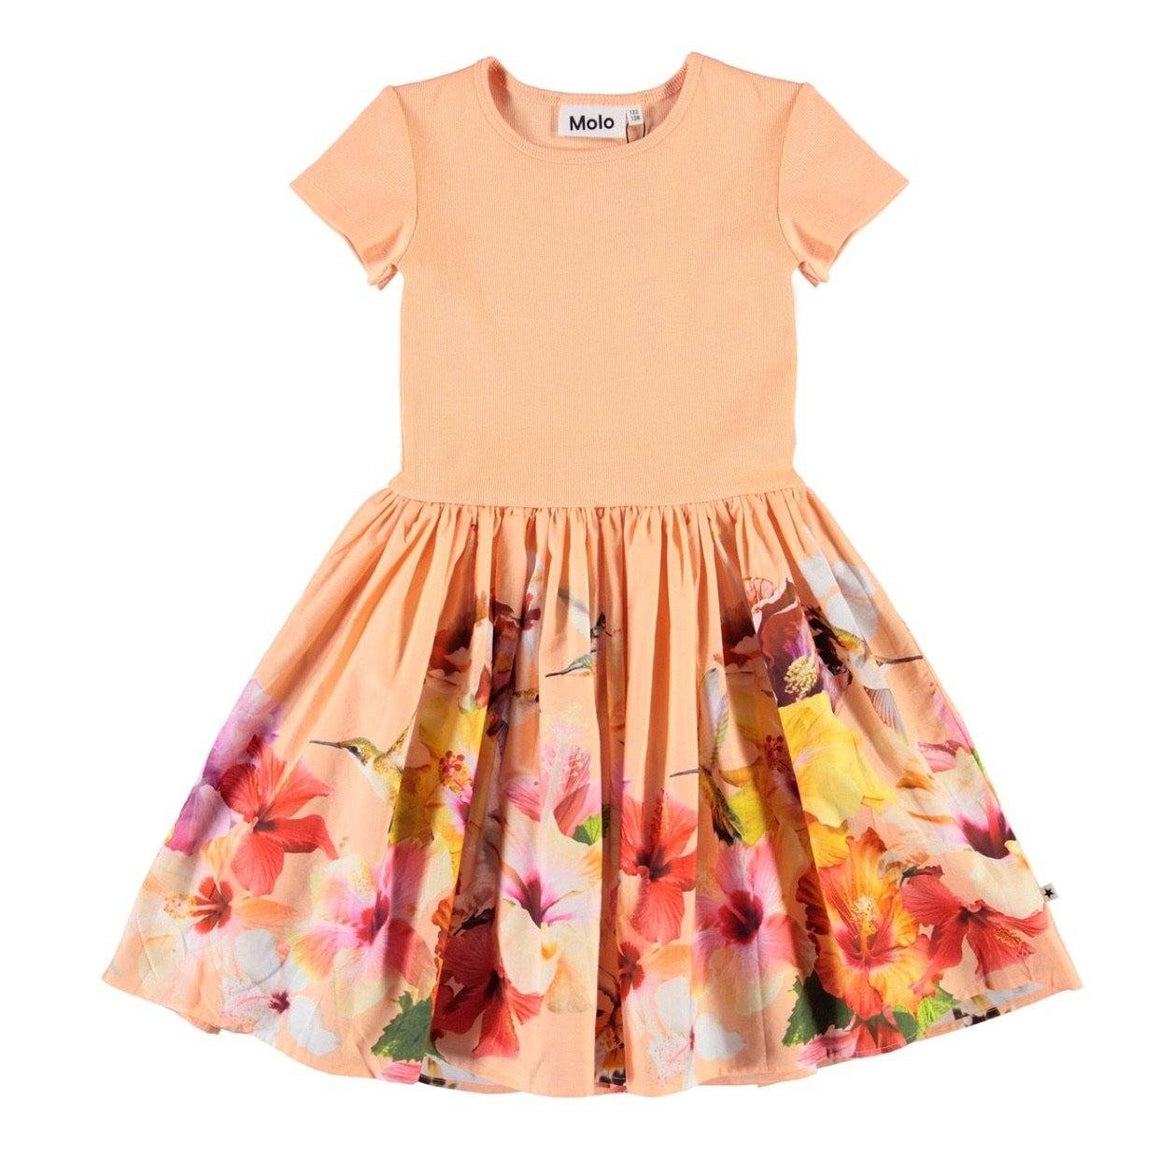 Molo - Cissa - Hummingbirds Dress Dress Molo 2/3 Years (92/98)